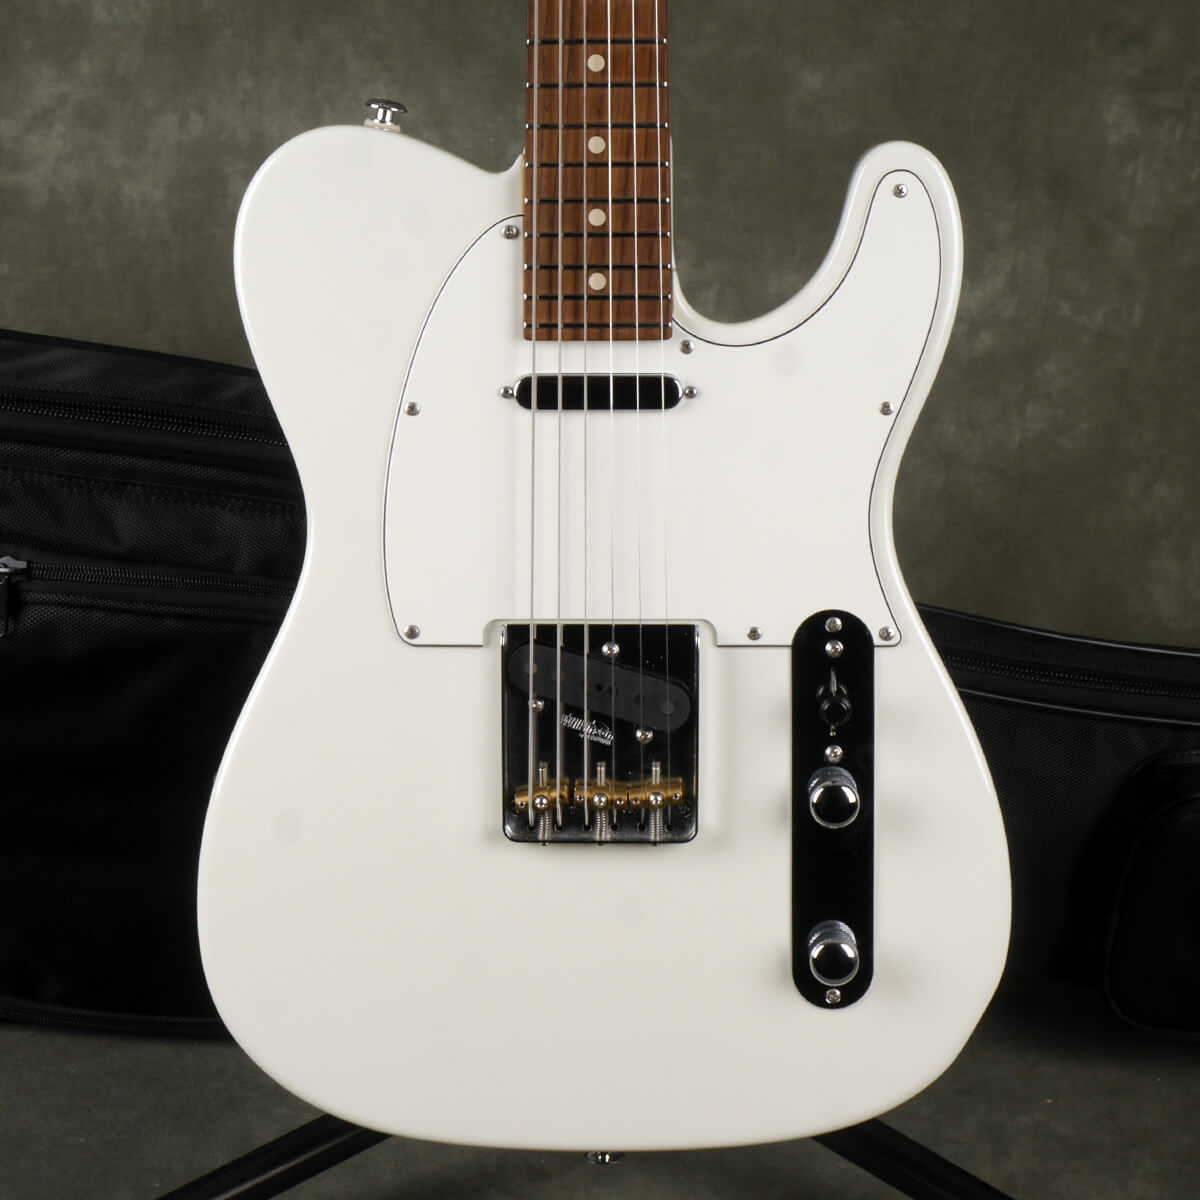 Suhr Classic T Pro - White w/Gig Bag - 2nd Hand